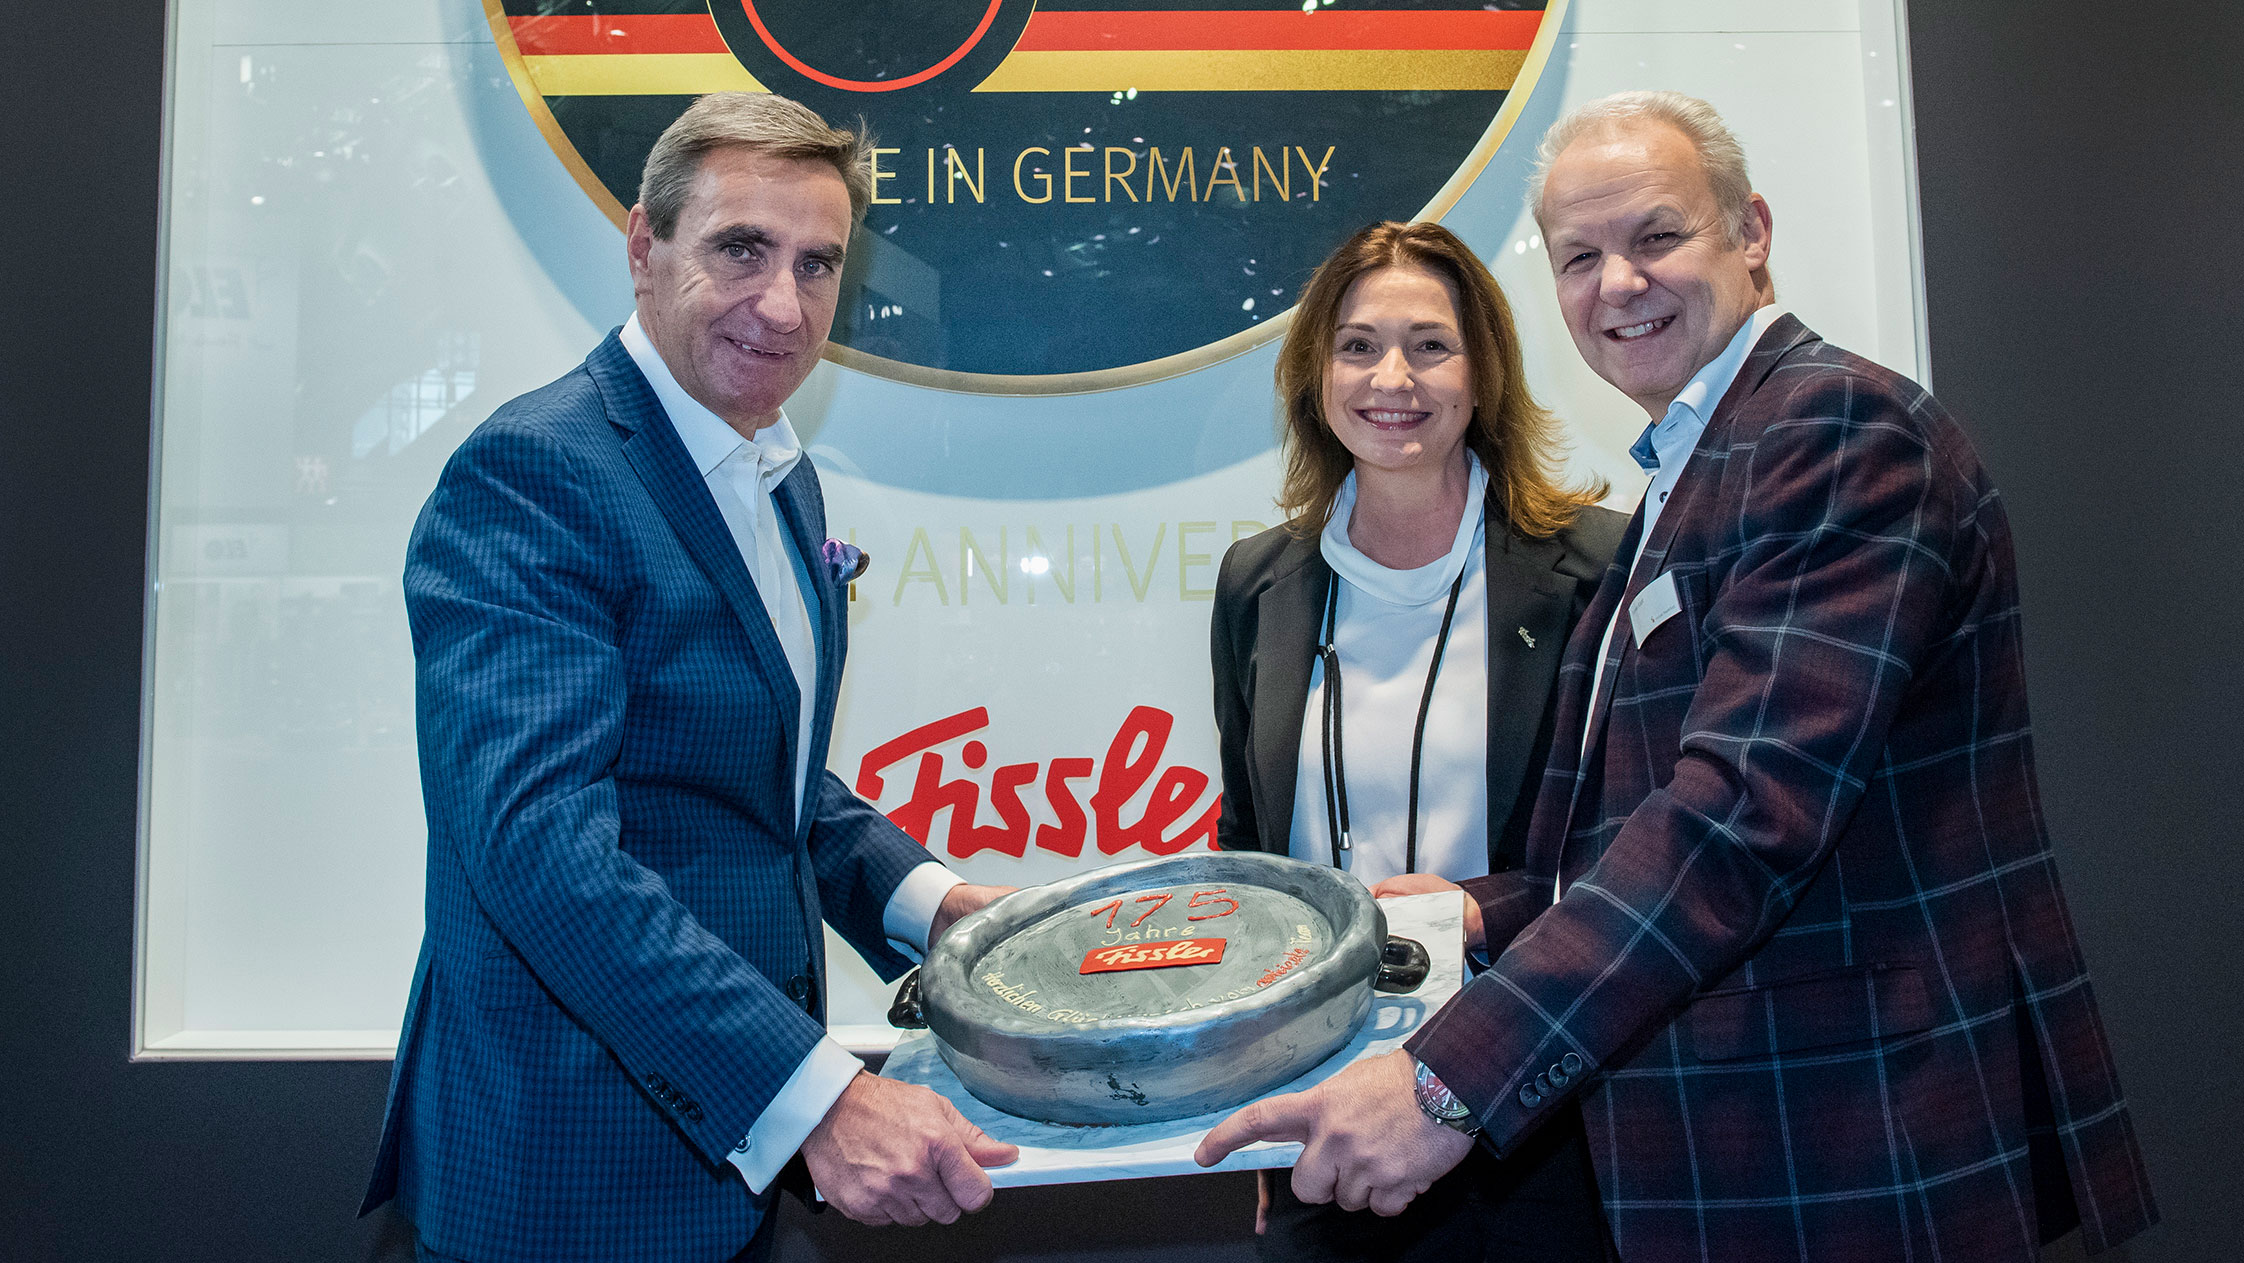 Fissler celebrating its 175th anniversary. From left: Stephan Kurzawski, Claudia Bubach, Thomas Kastl.